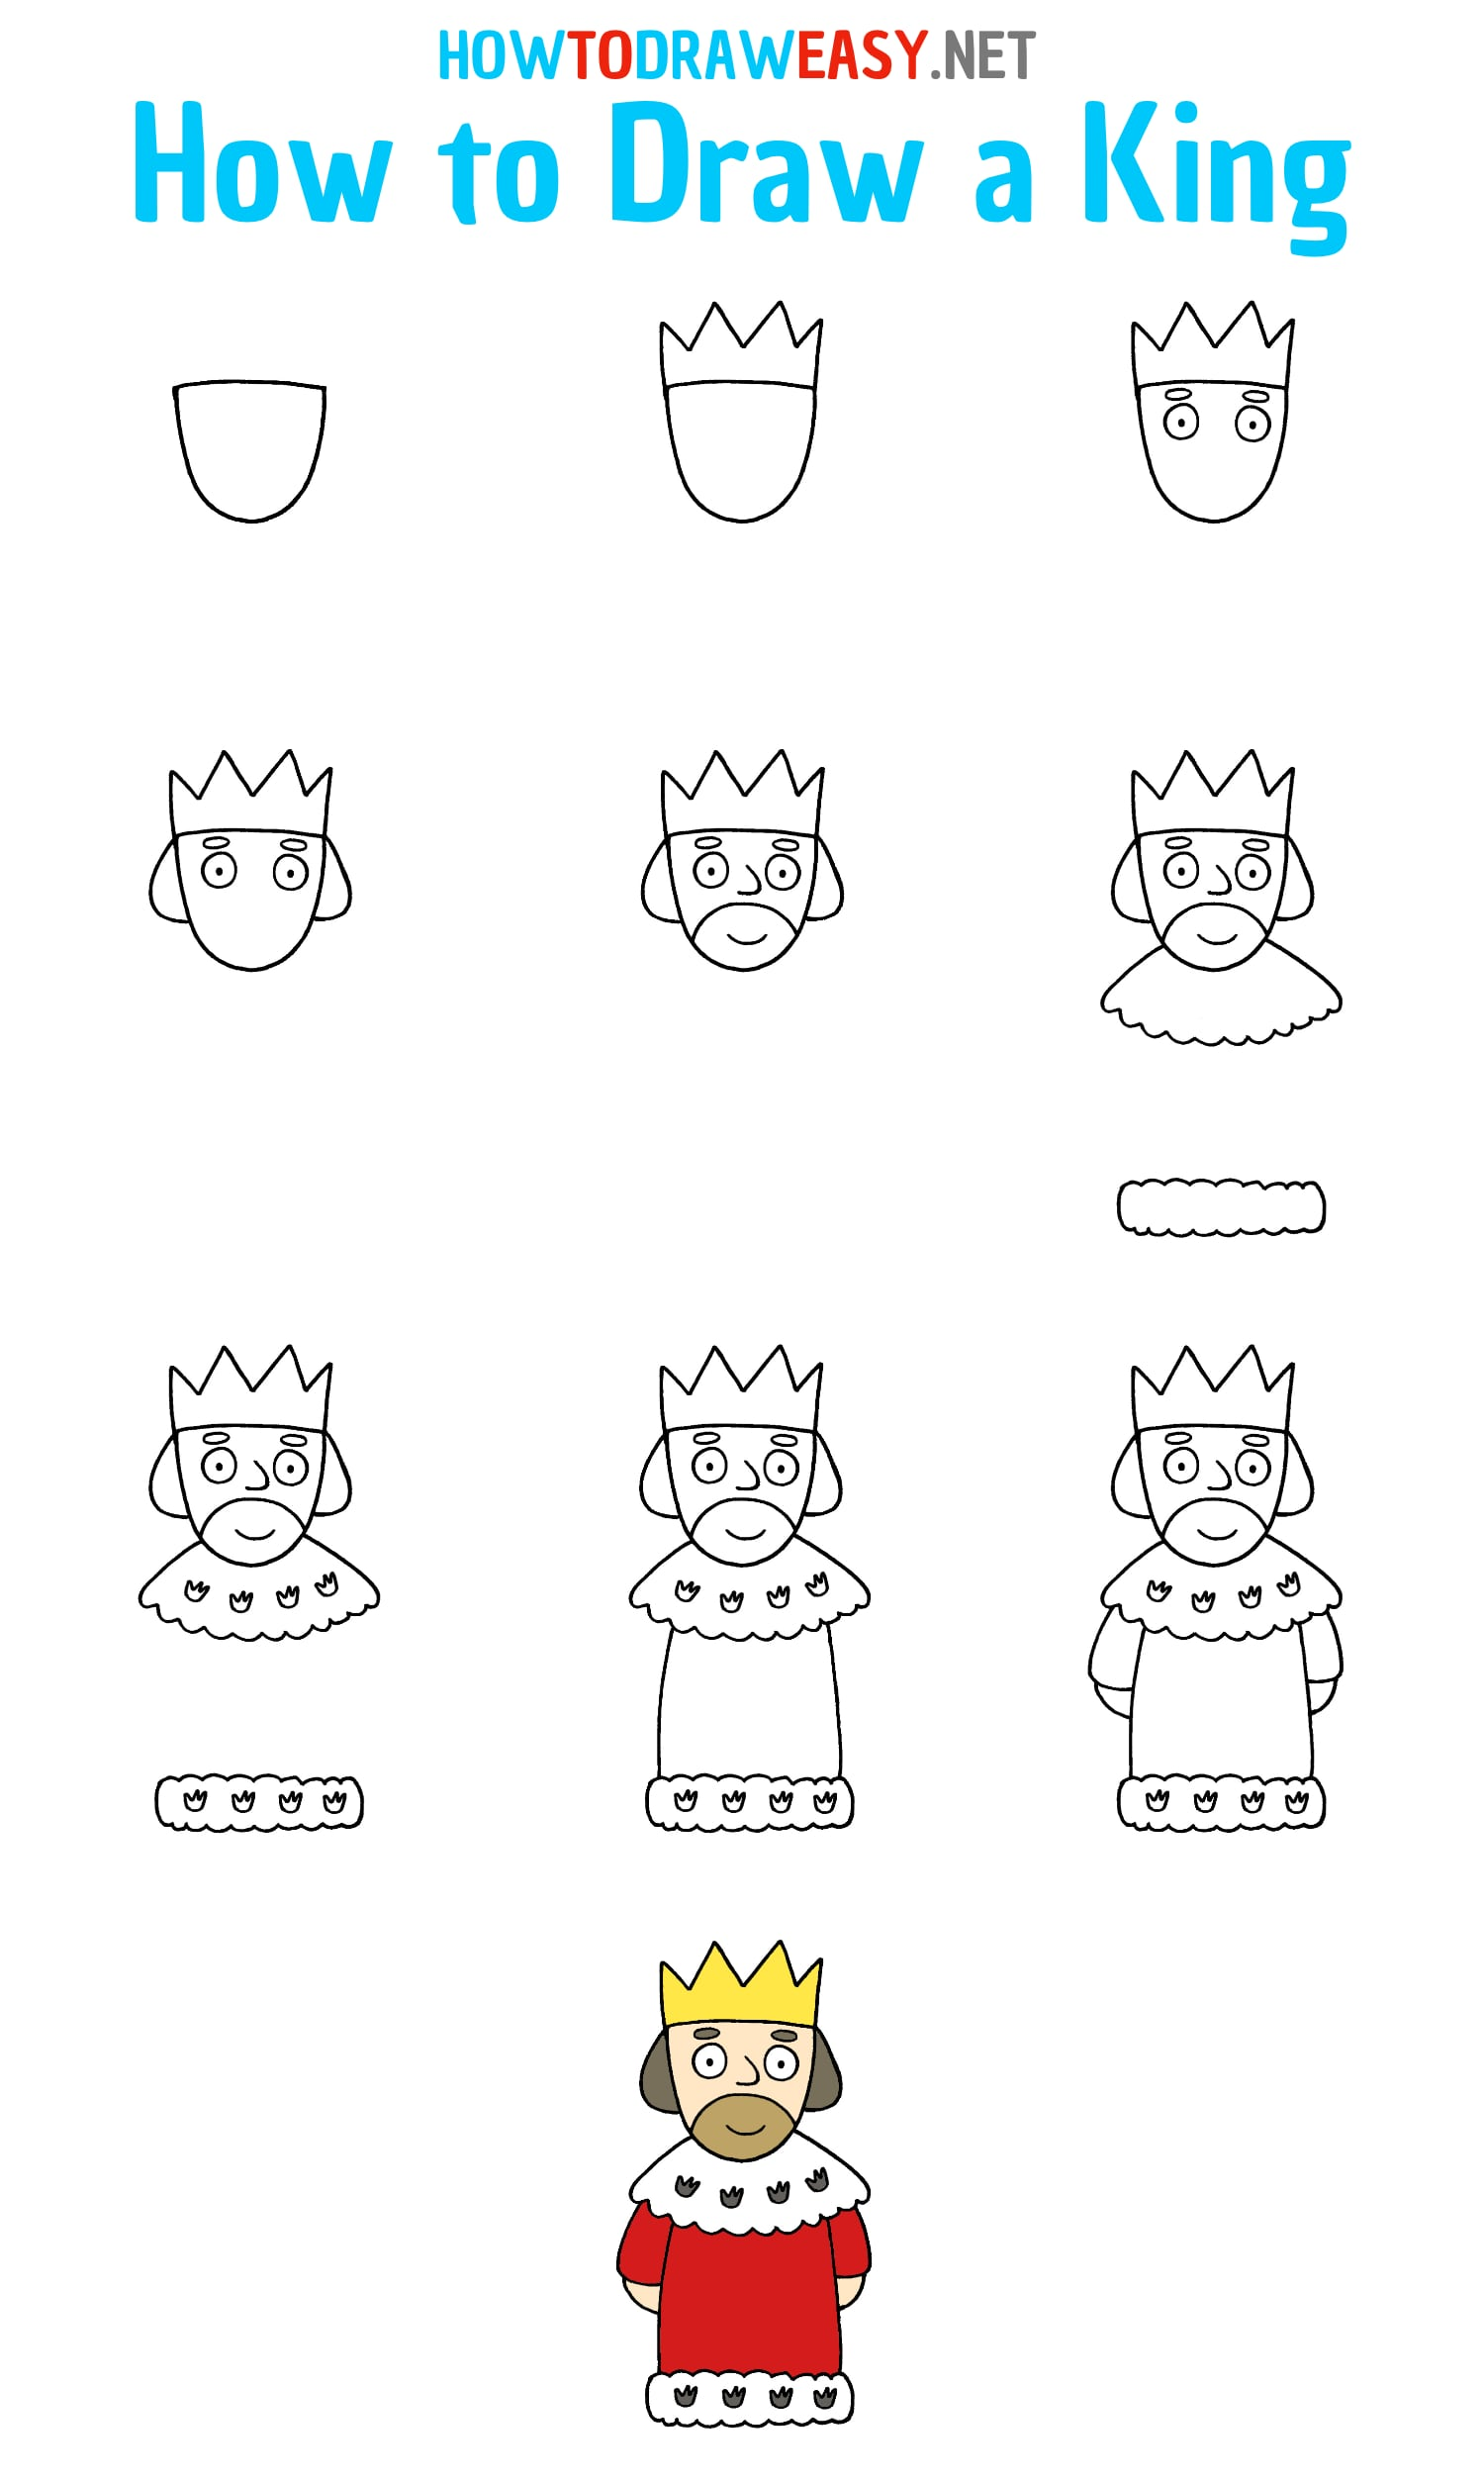 How to Draw a King Step by Step